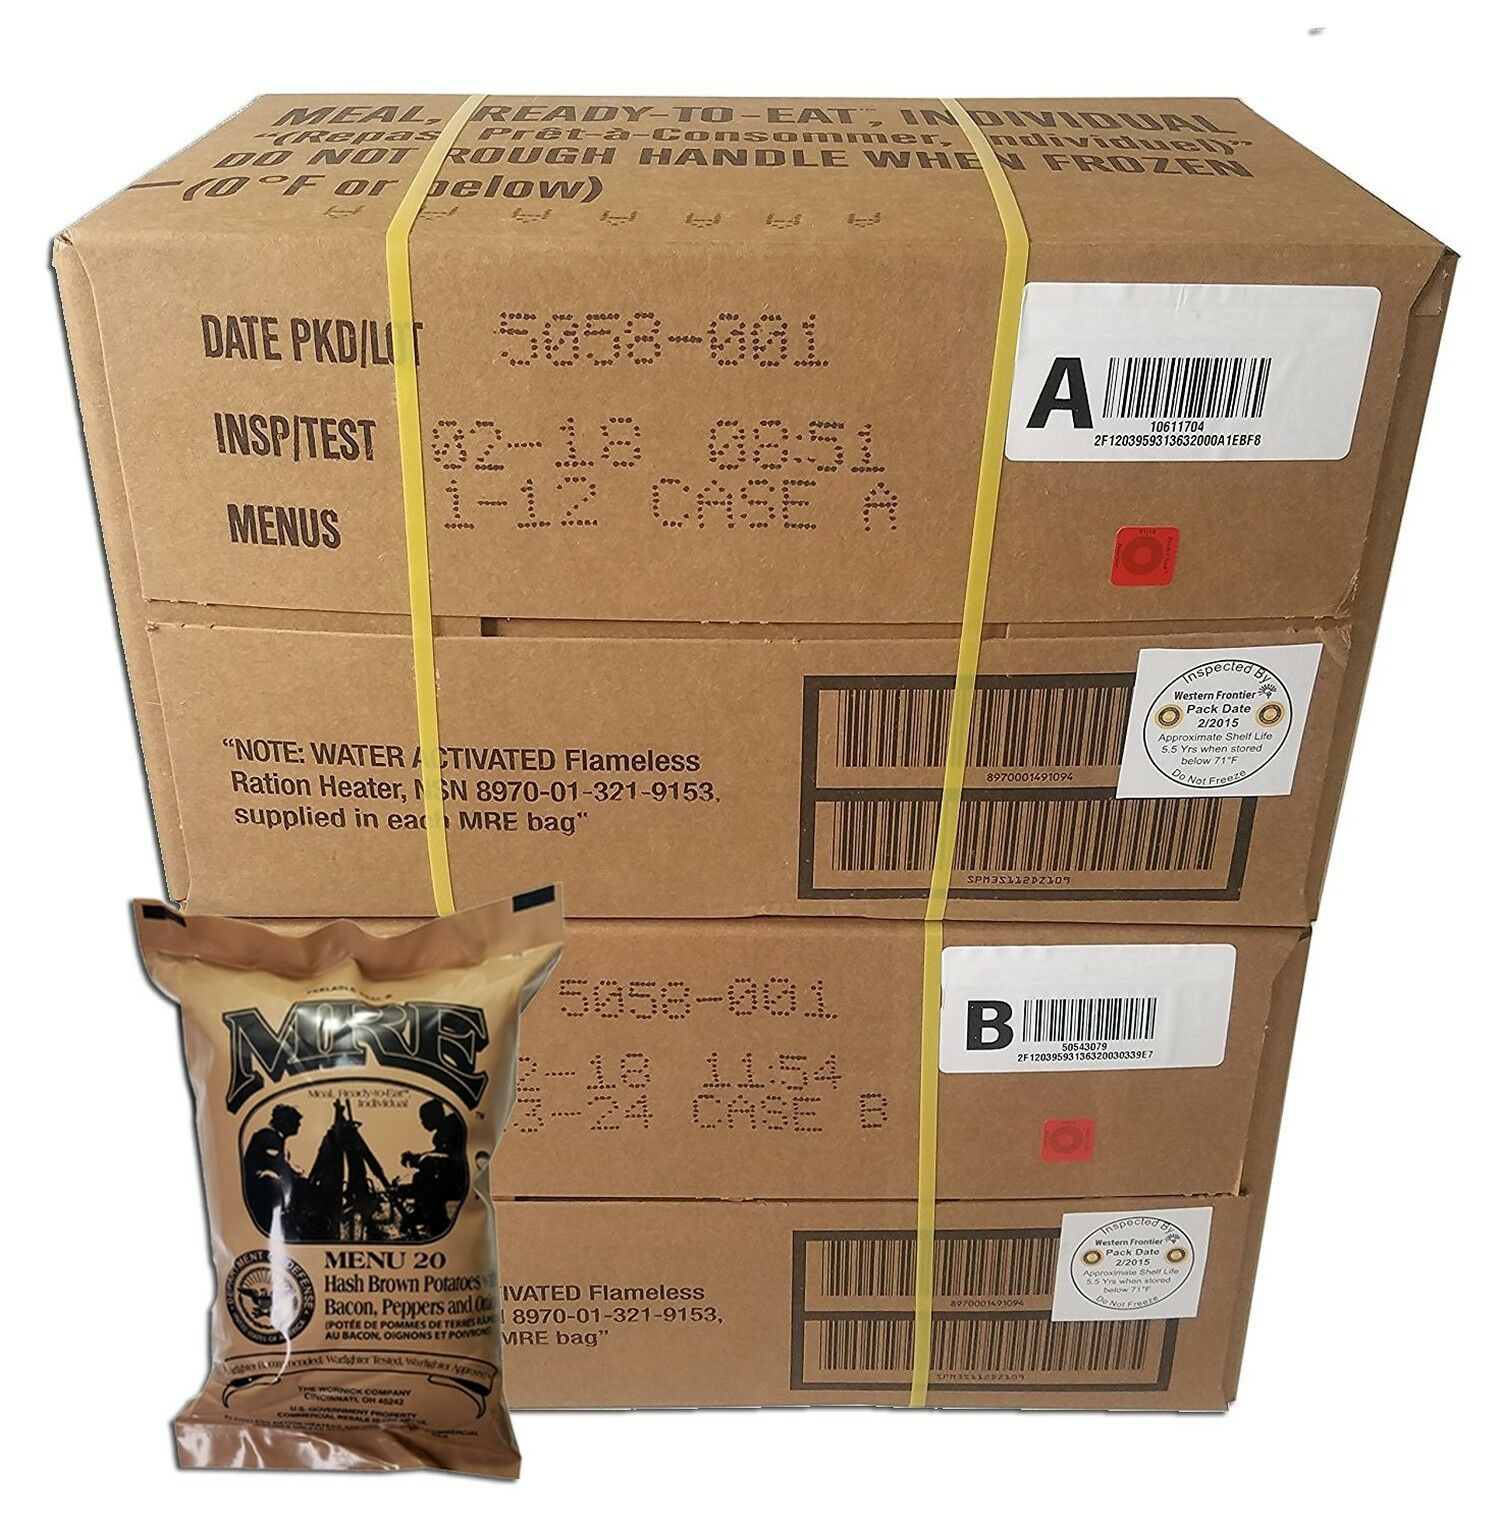 2018  ULTIMATE MRE Case A and Case B Bundle 24 Meals with 2018 Inspection Date...  10 days return